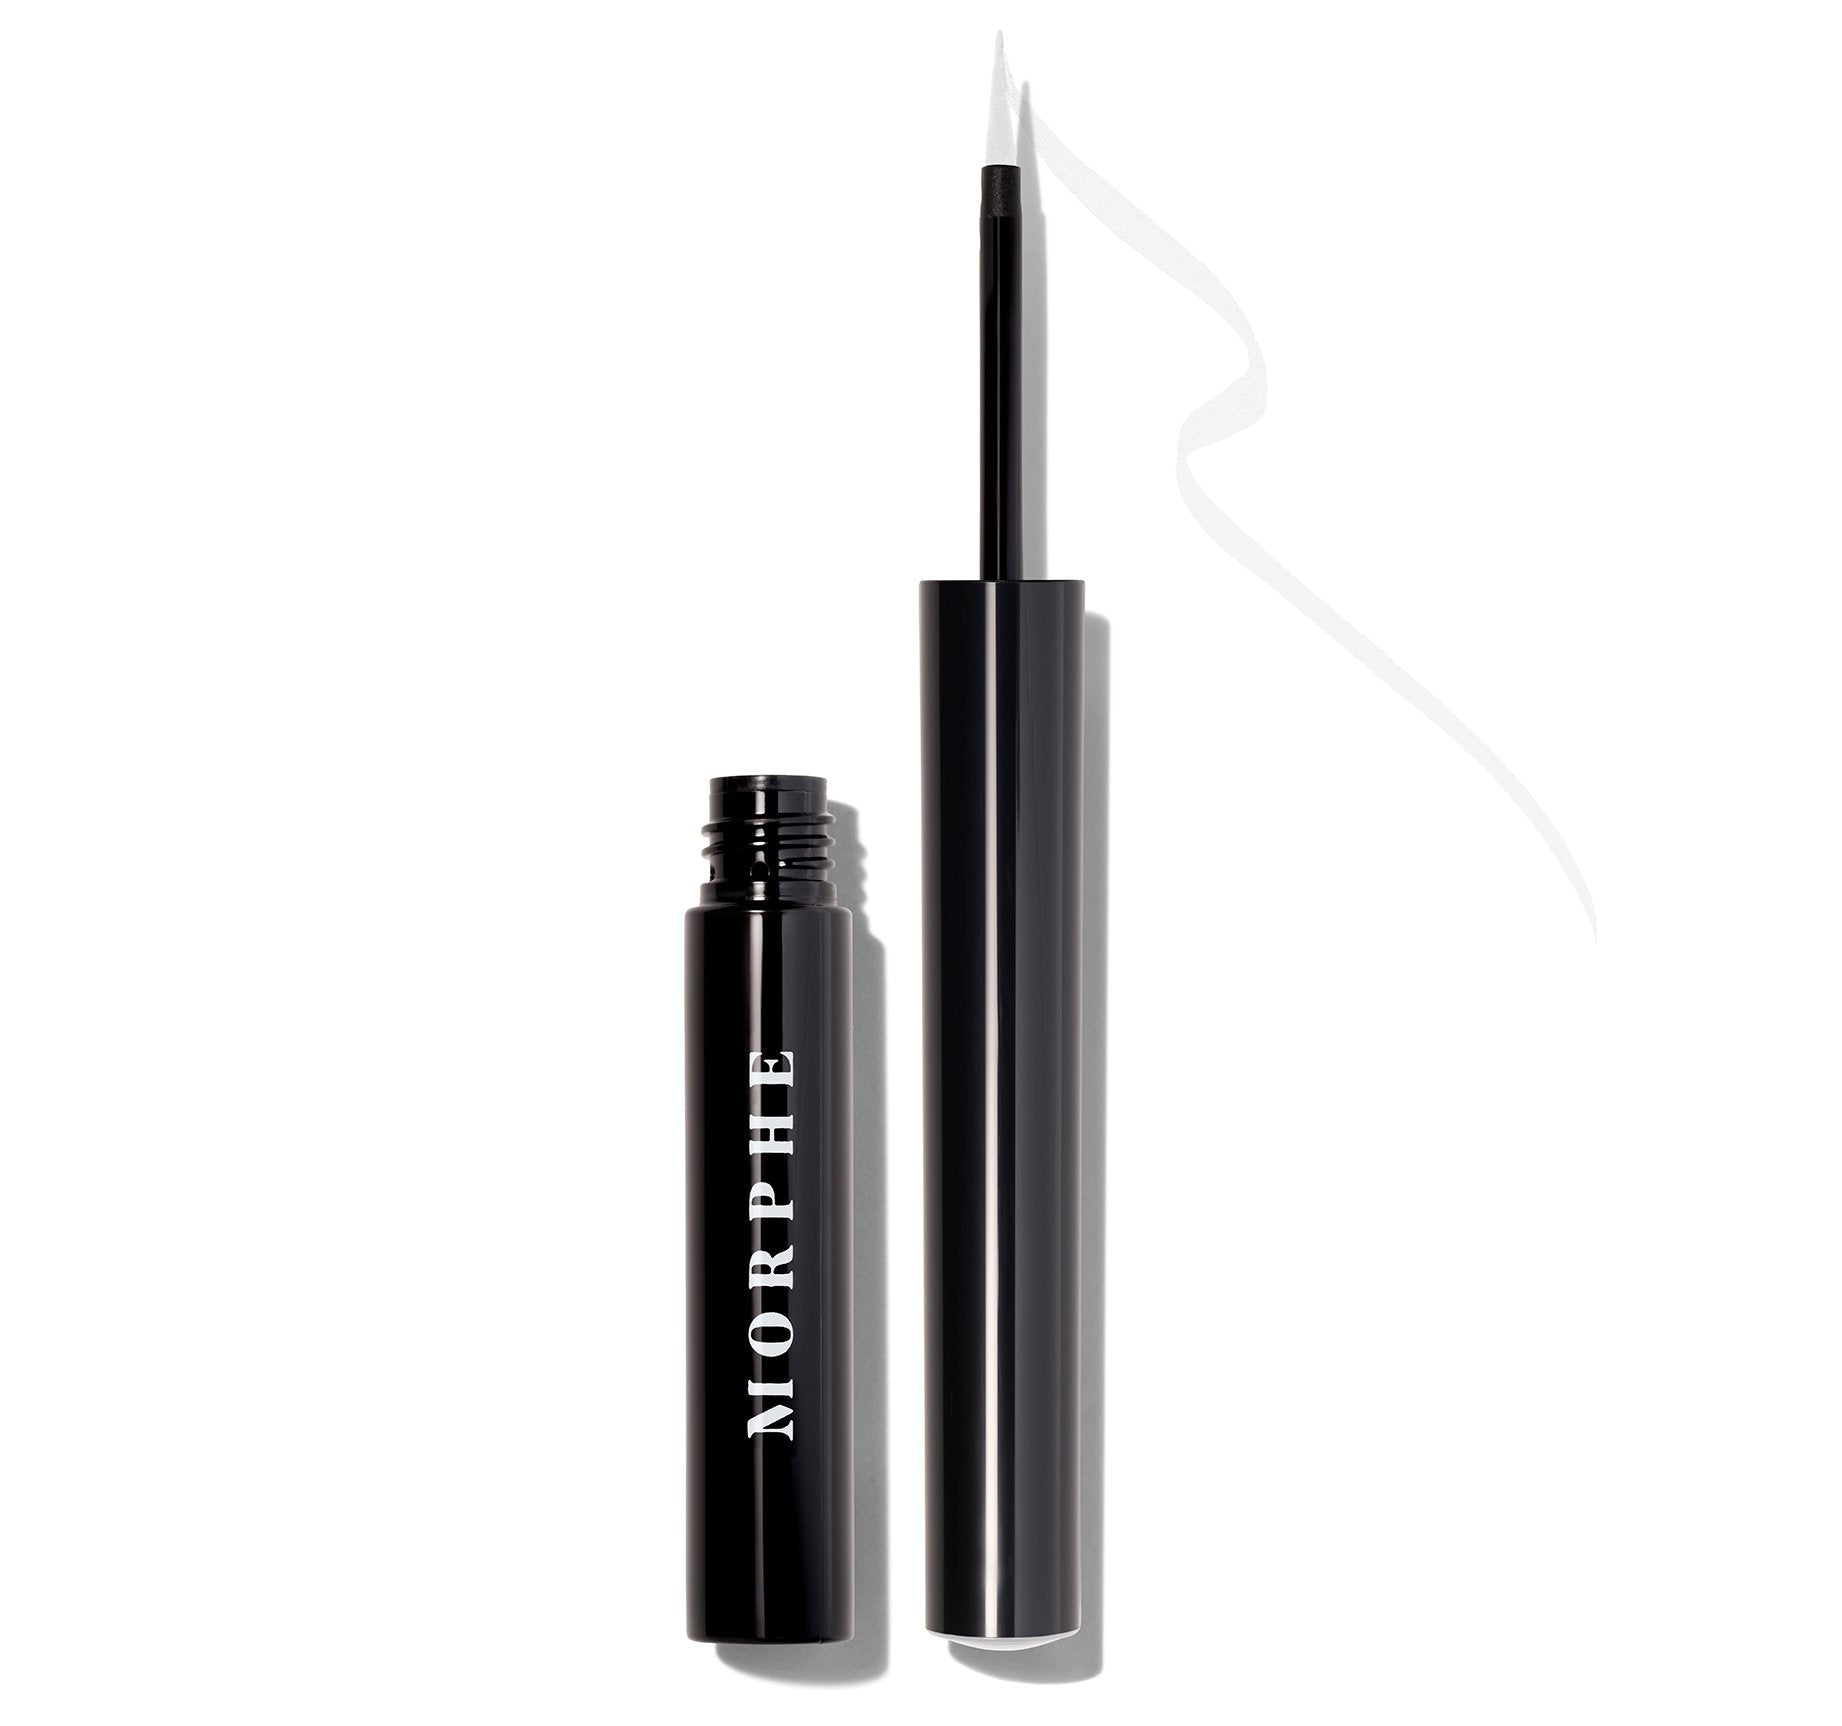 LIQUID LINER - BLANK SLATE, view larger image